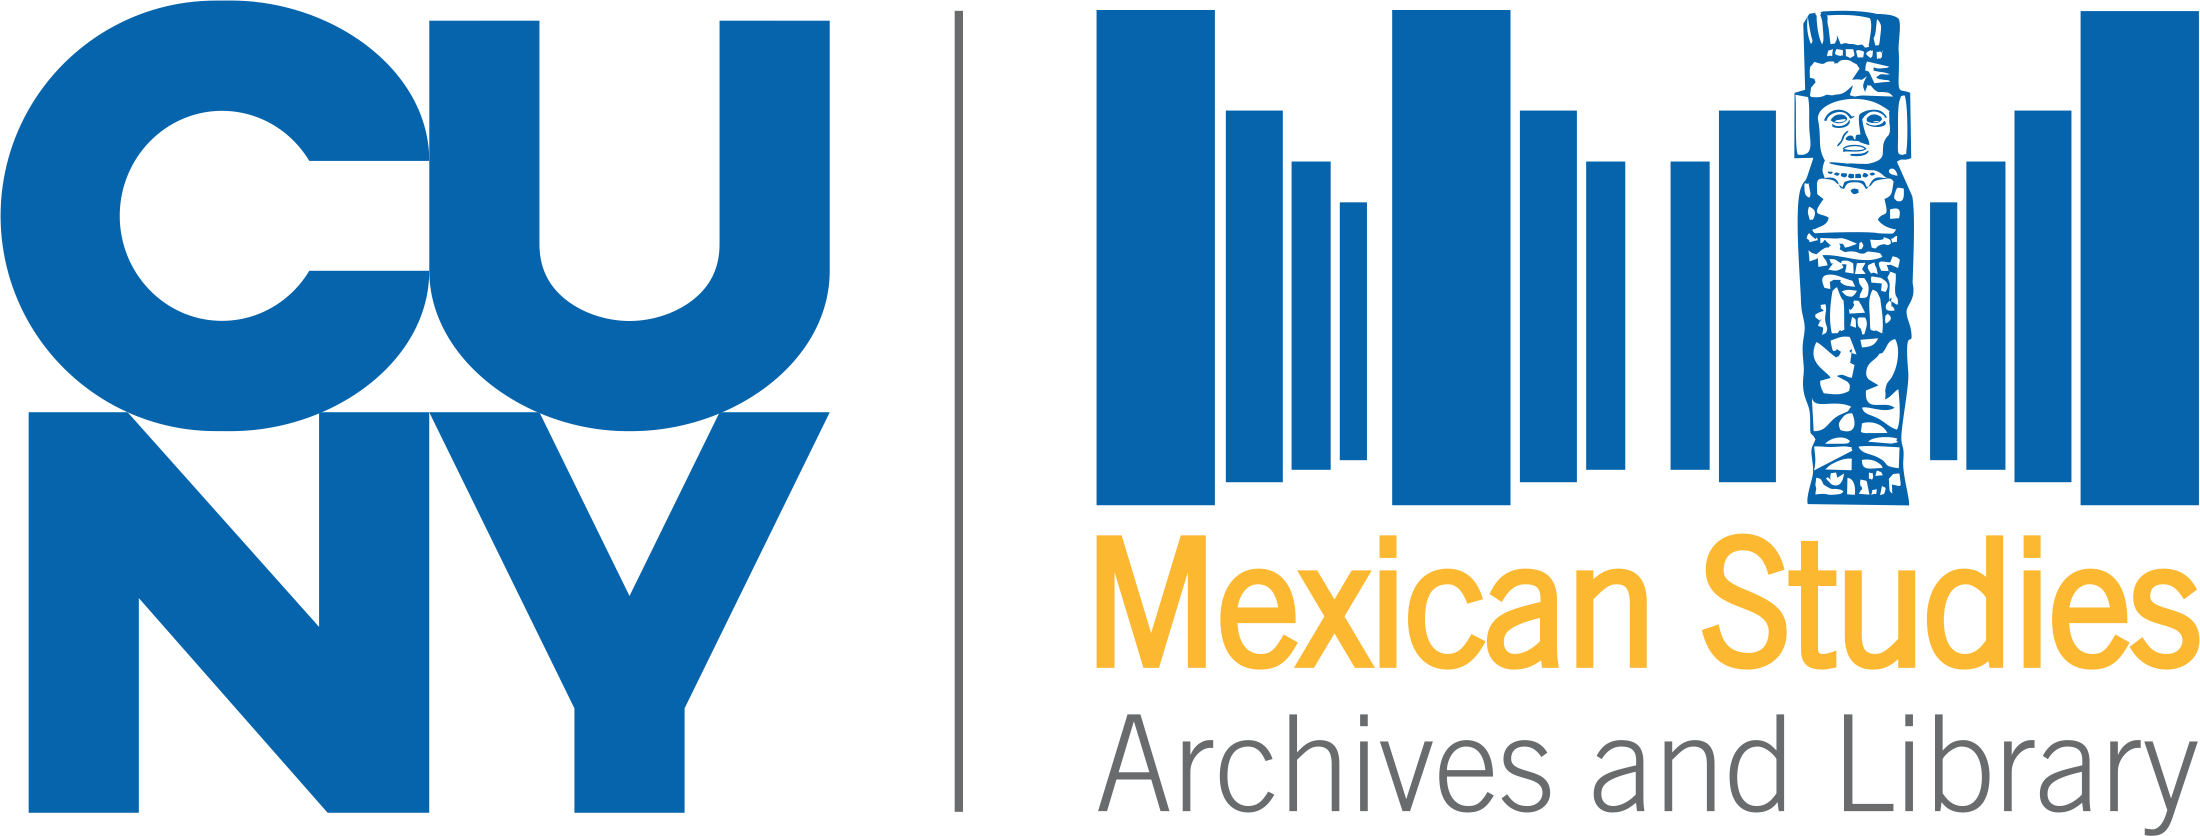 CUNY Mexican Studies Institute